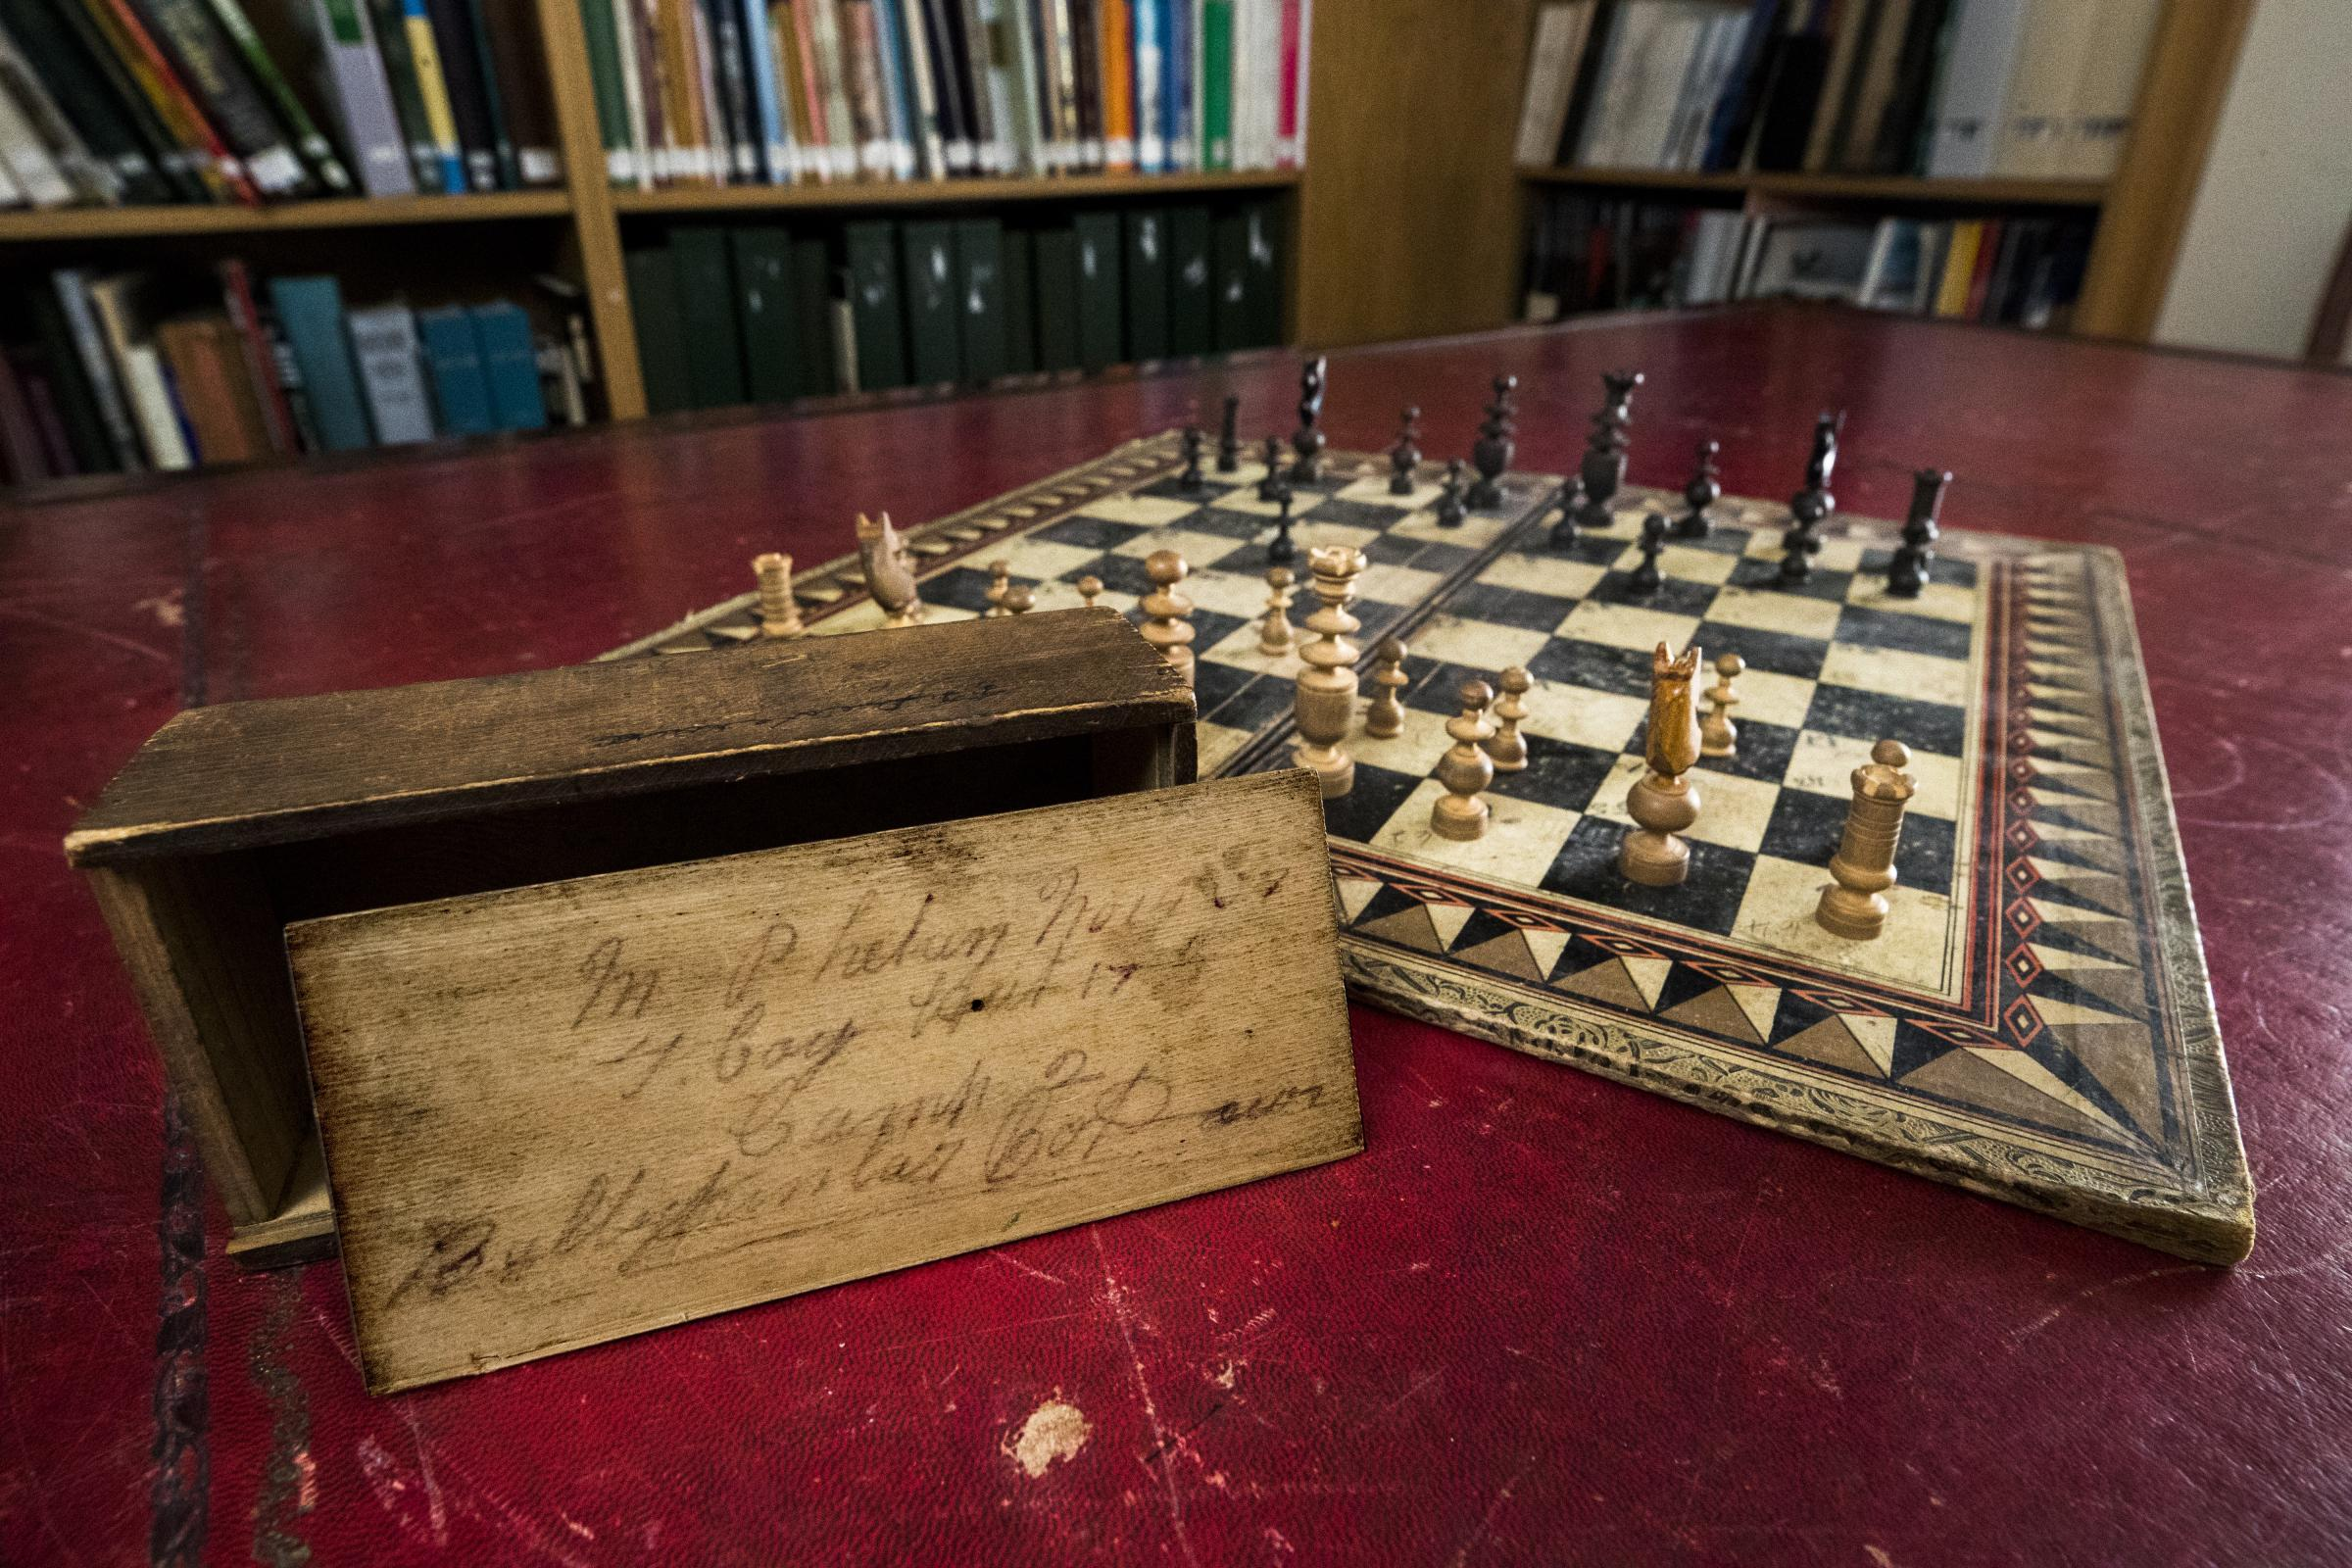 Century-old chess board belonging to Martin Sheen's family to go on